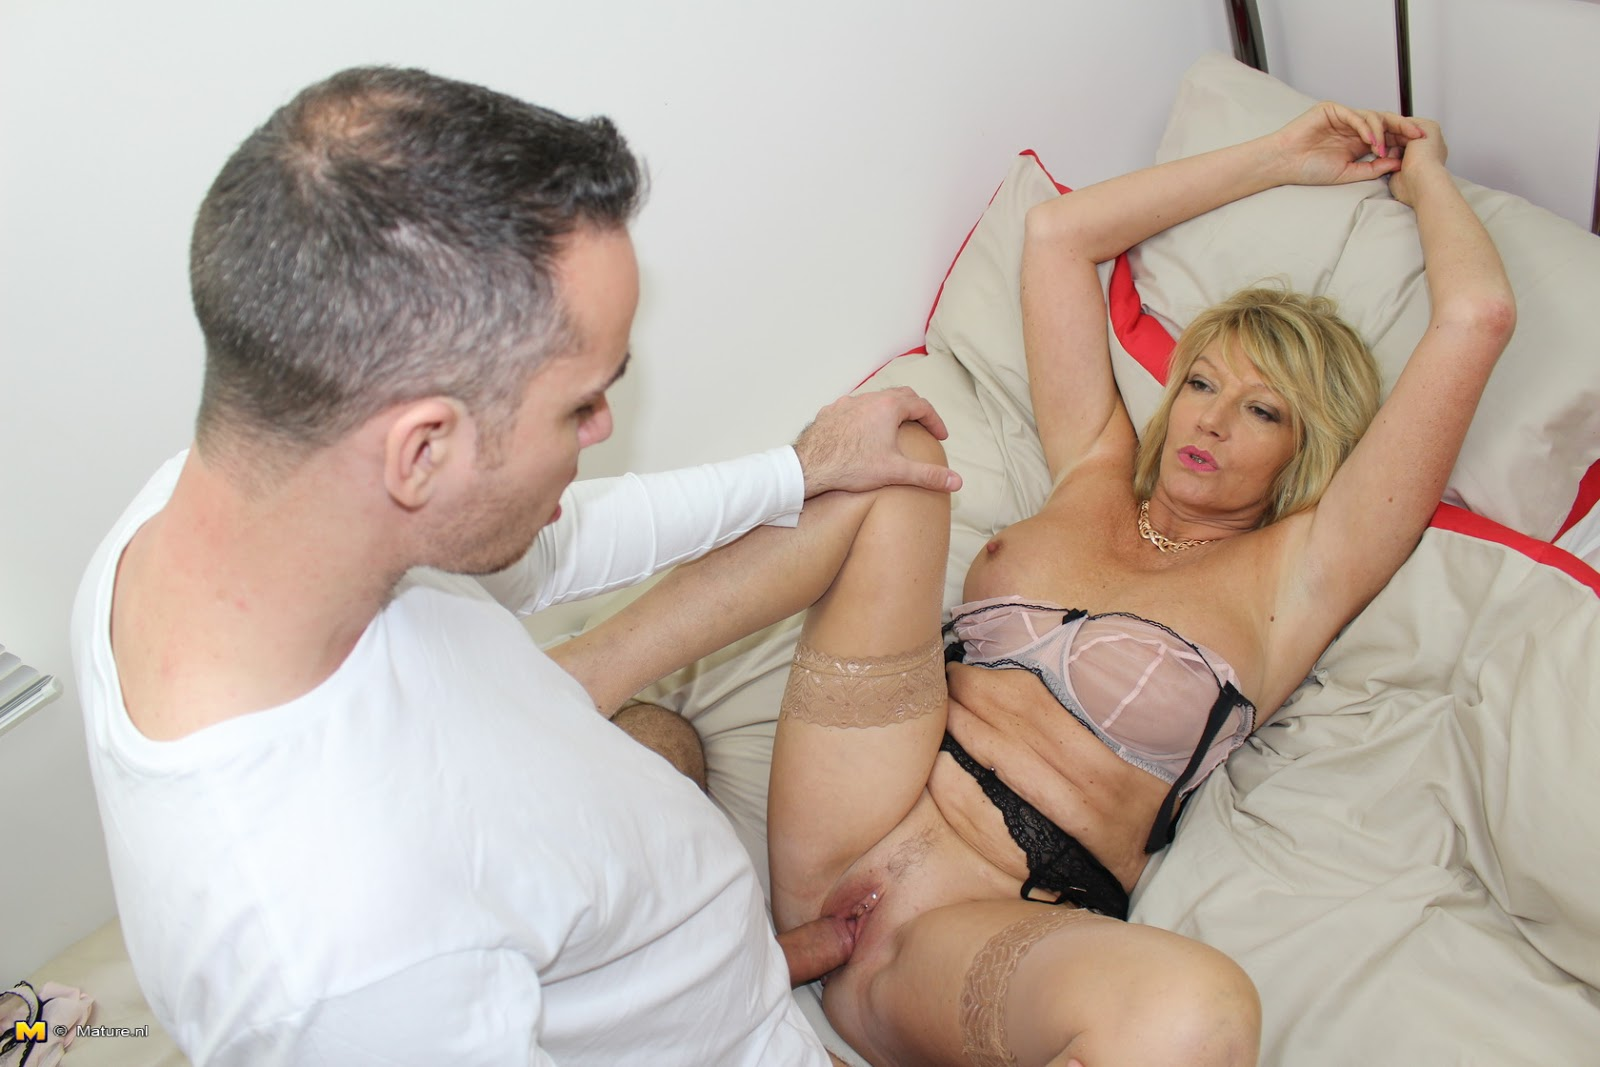 Archive Of Old Women Amy Uk Hardcore Mature-3681